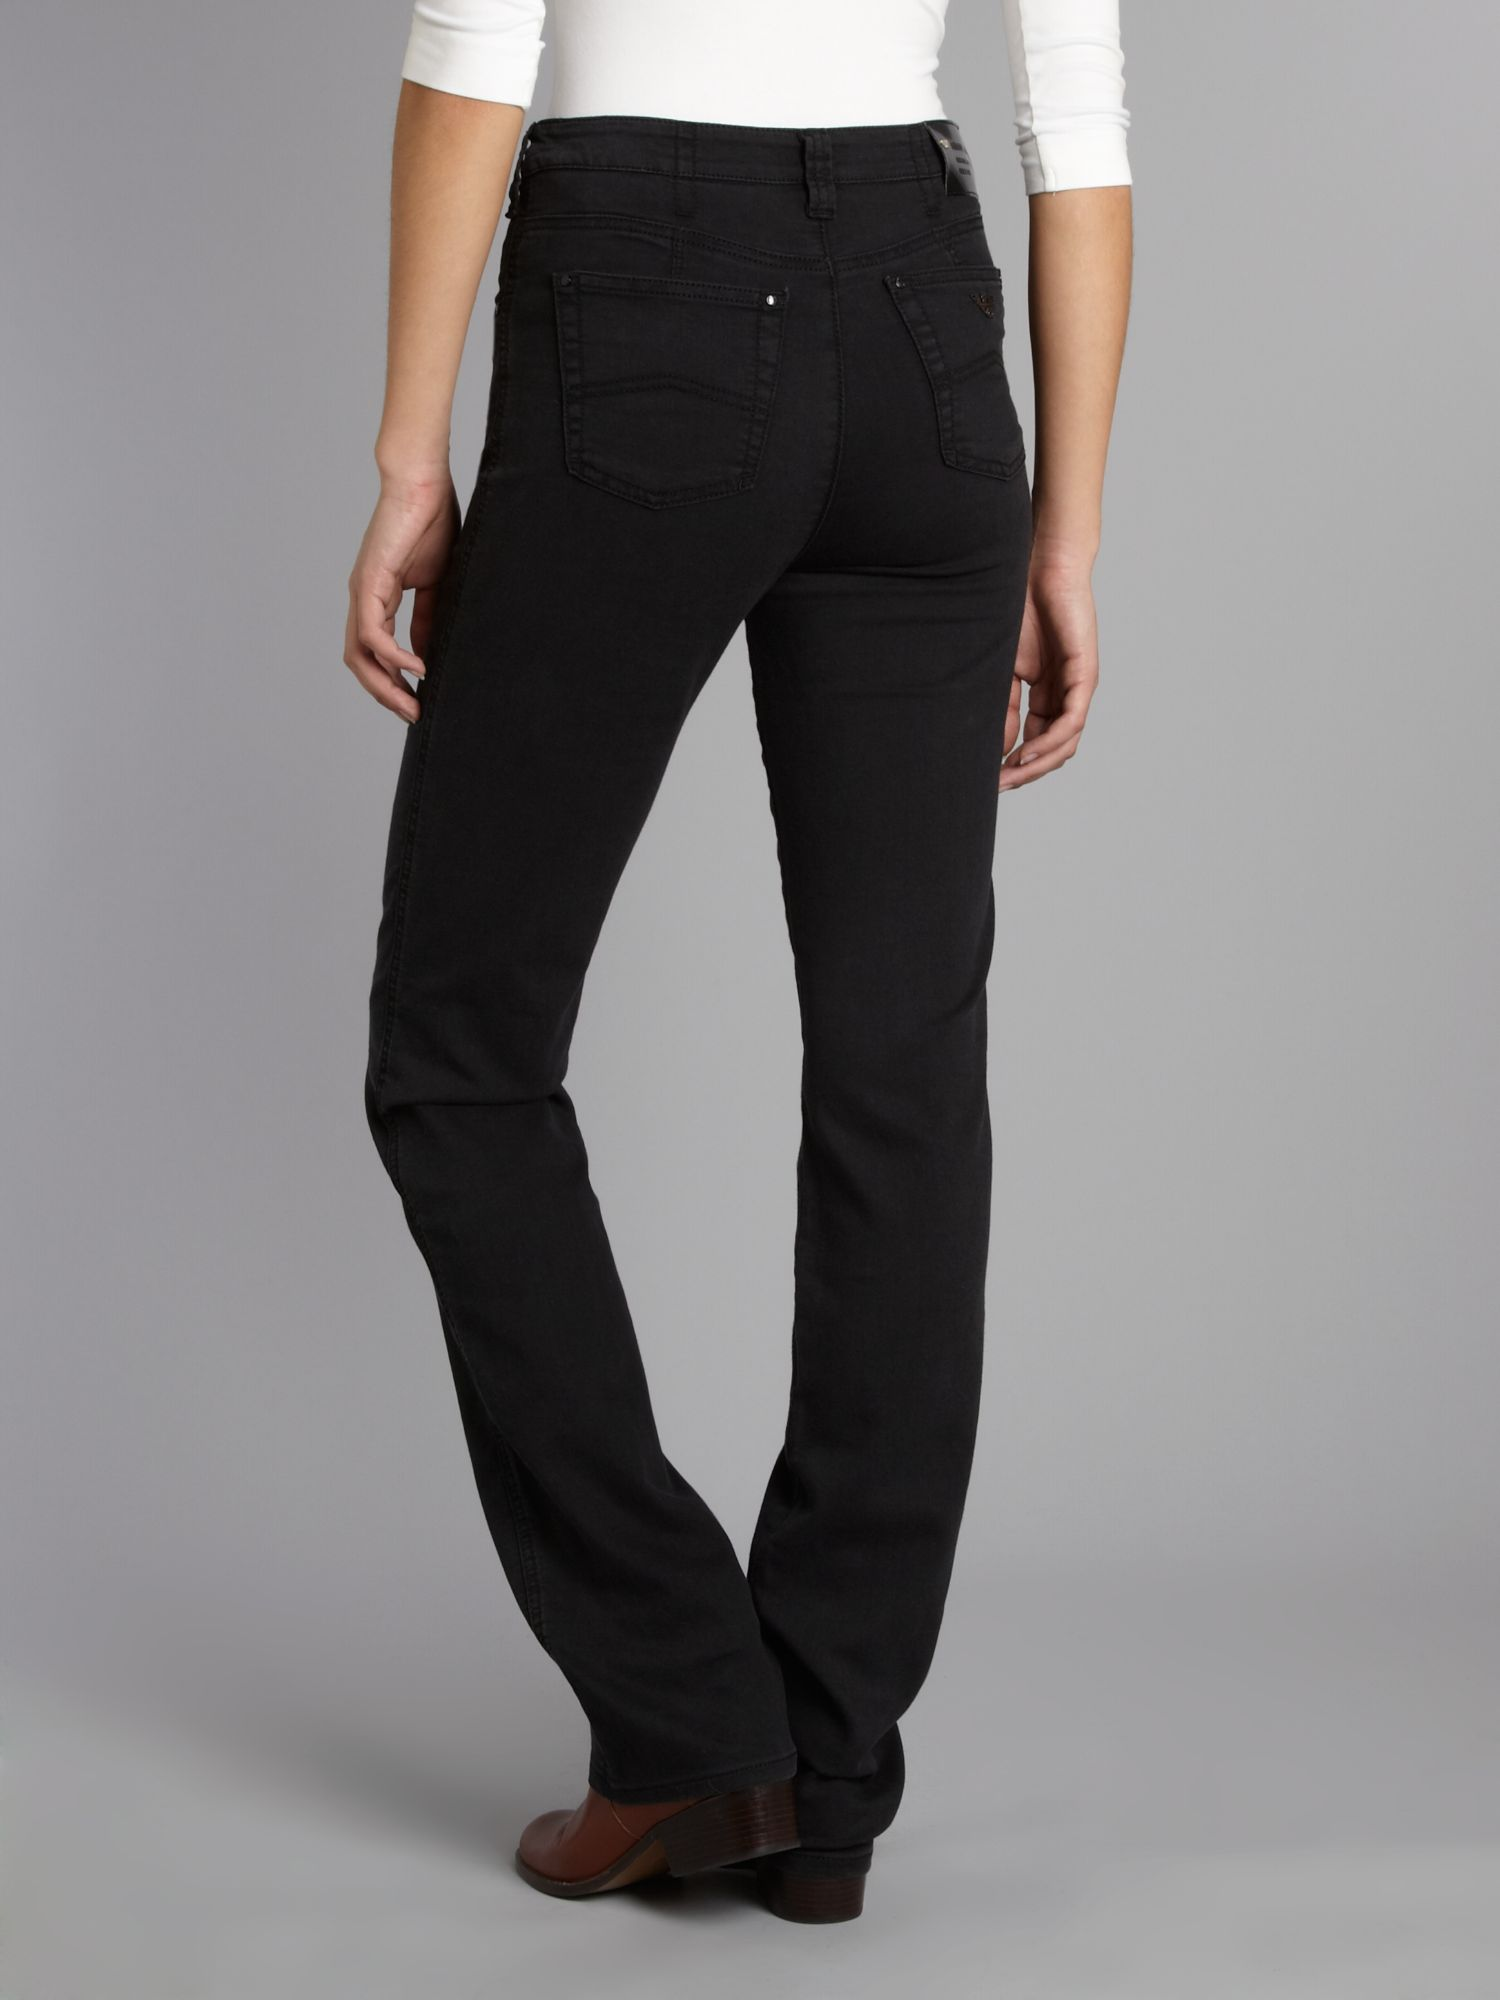 Lyst - Armani Jeans High Waisted Powerstretch Straight Leg Jeans in Black